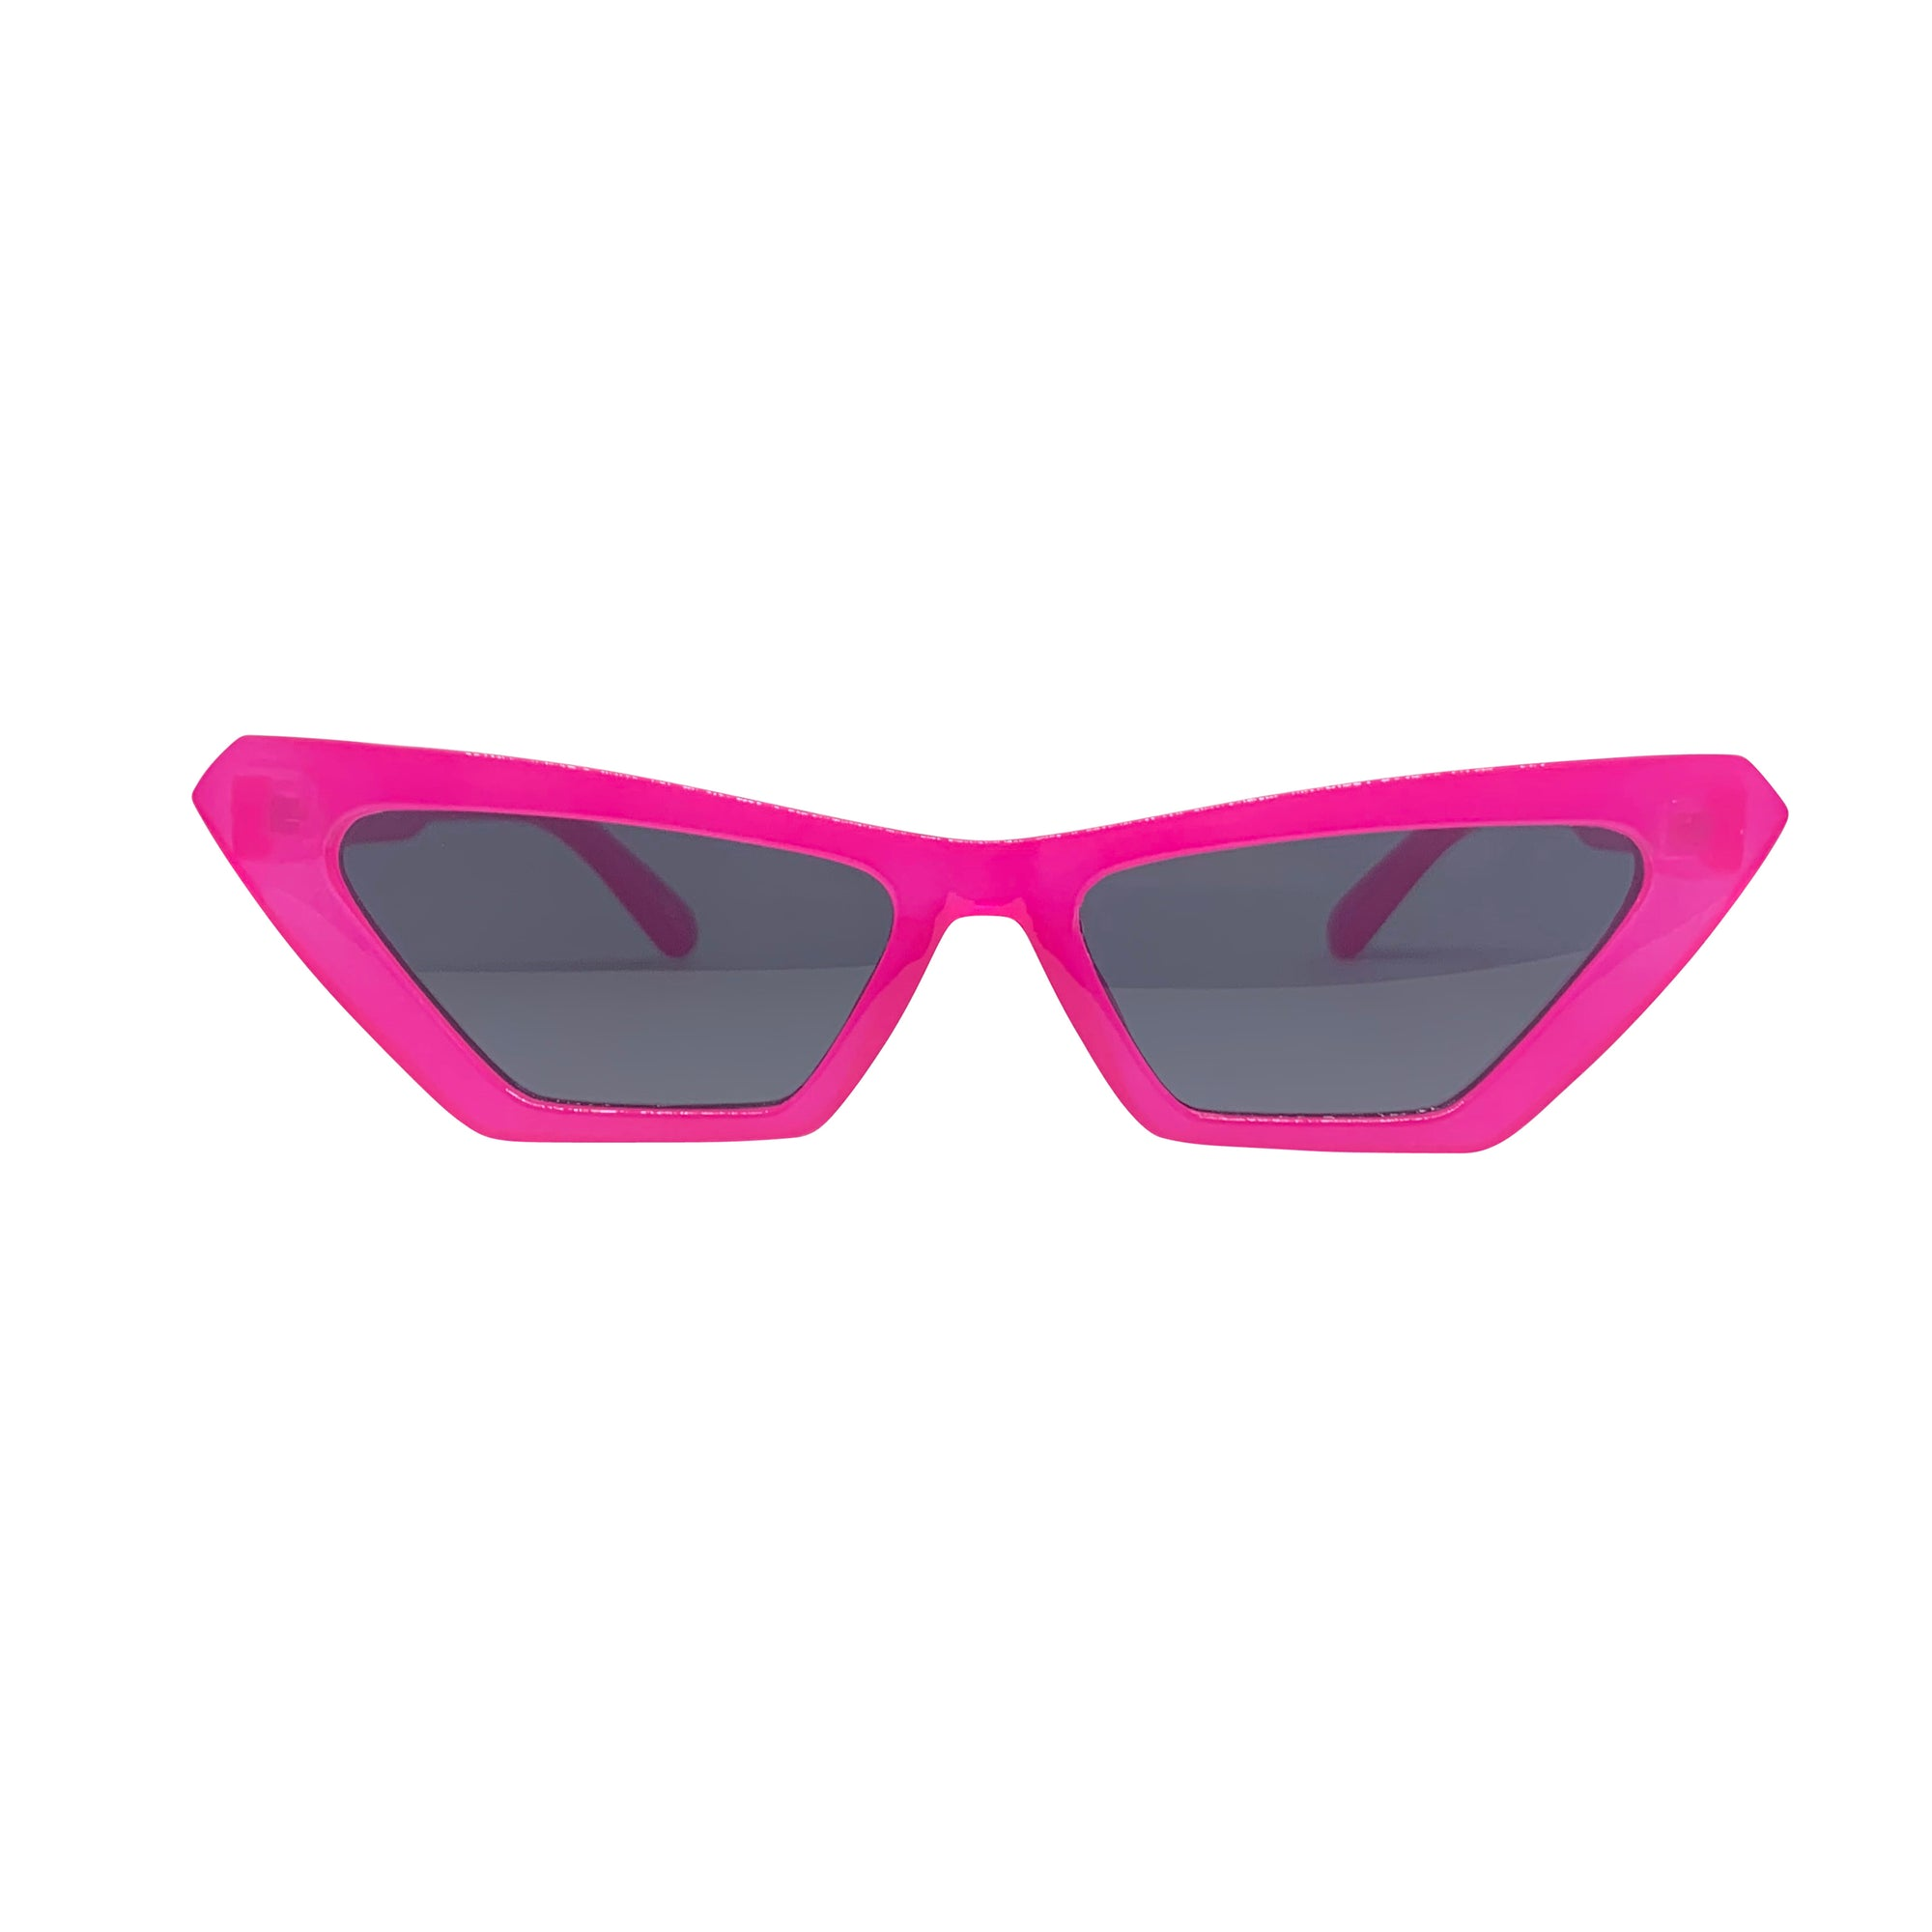 ANNABELLE Neon Pink Cat-Eye Sunnies